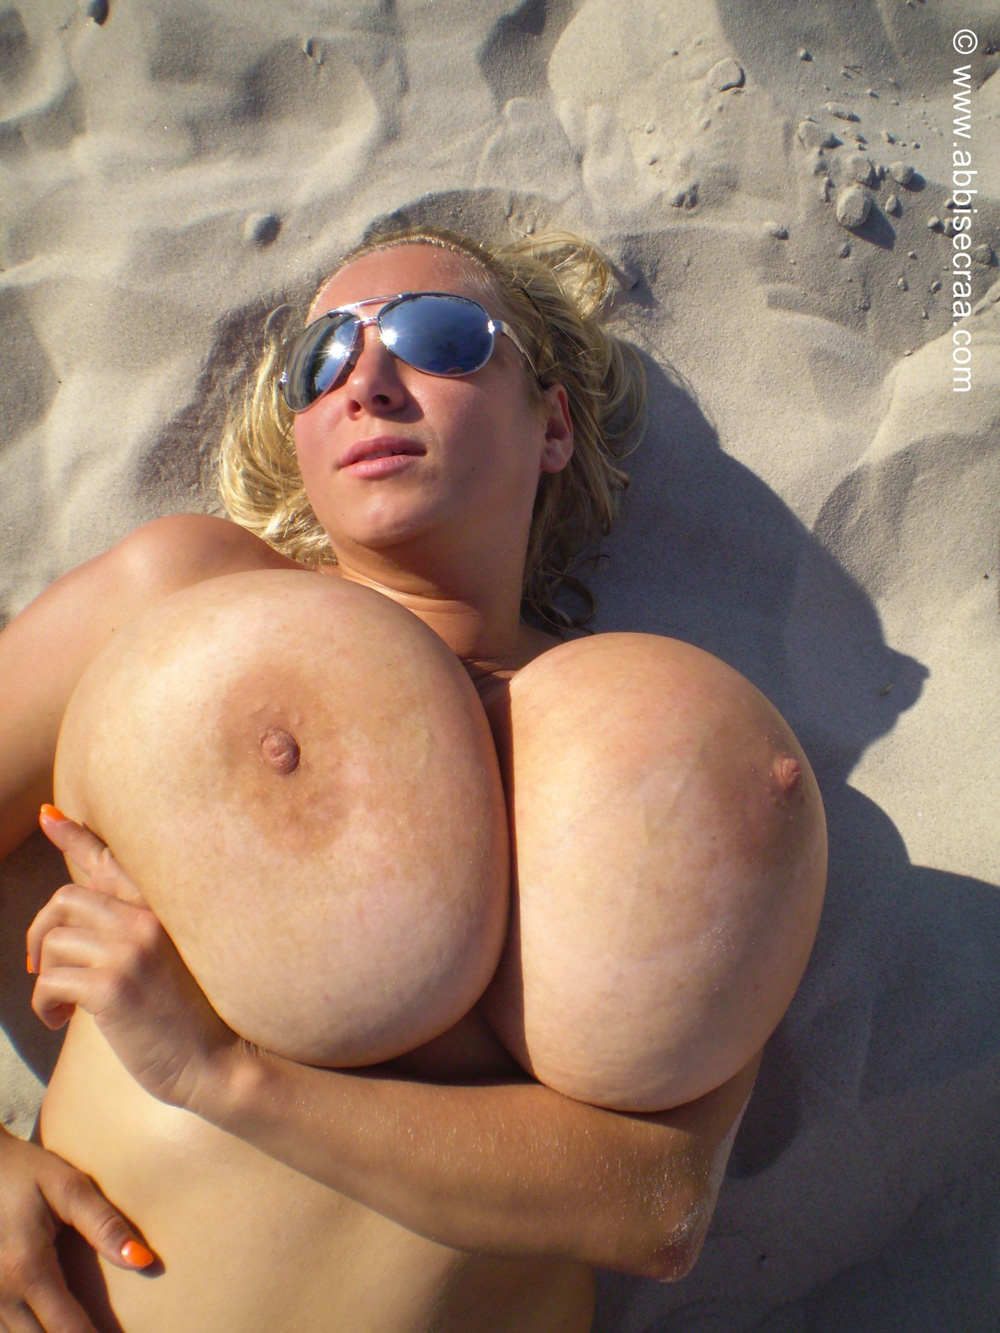 bigest boobs ever naked